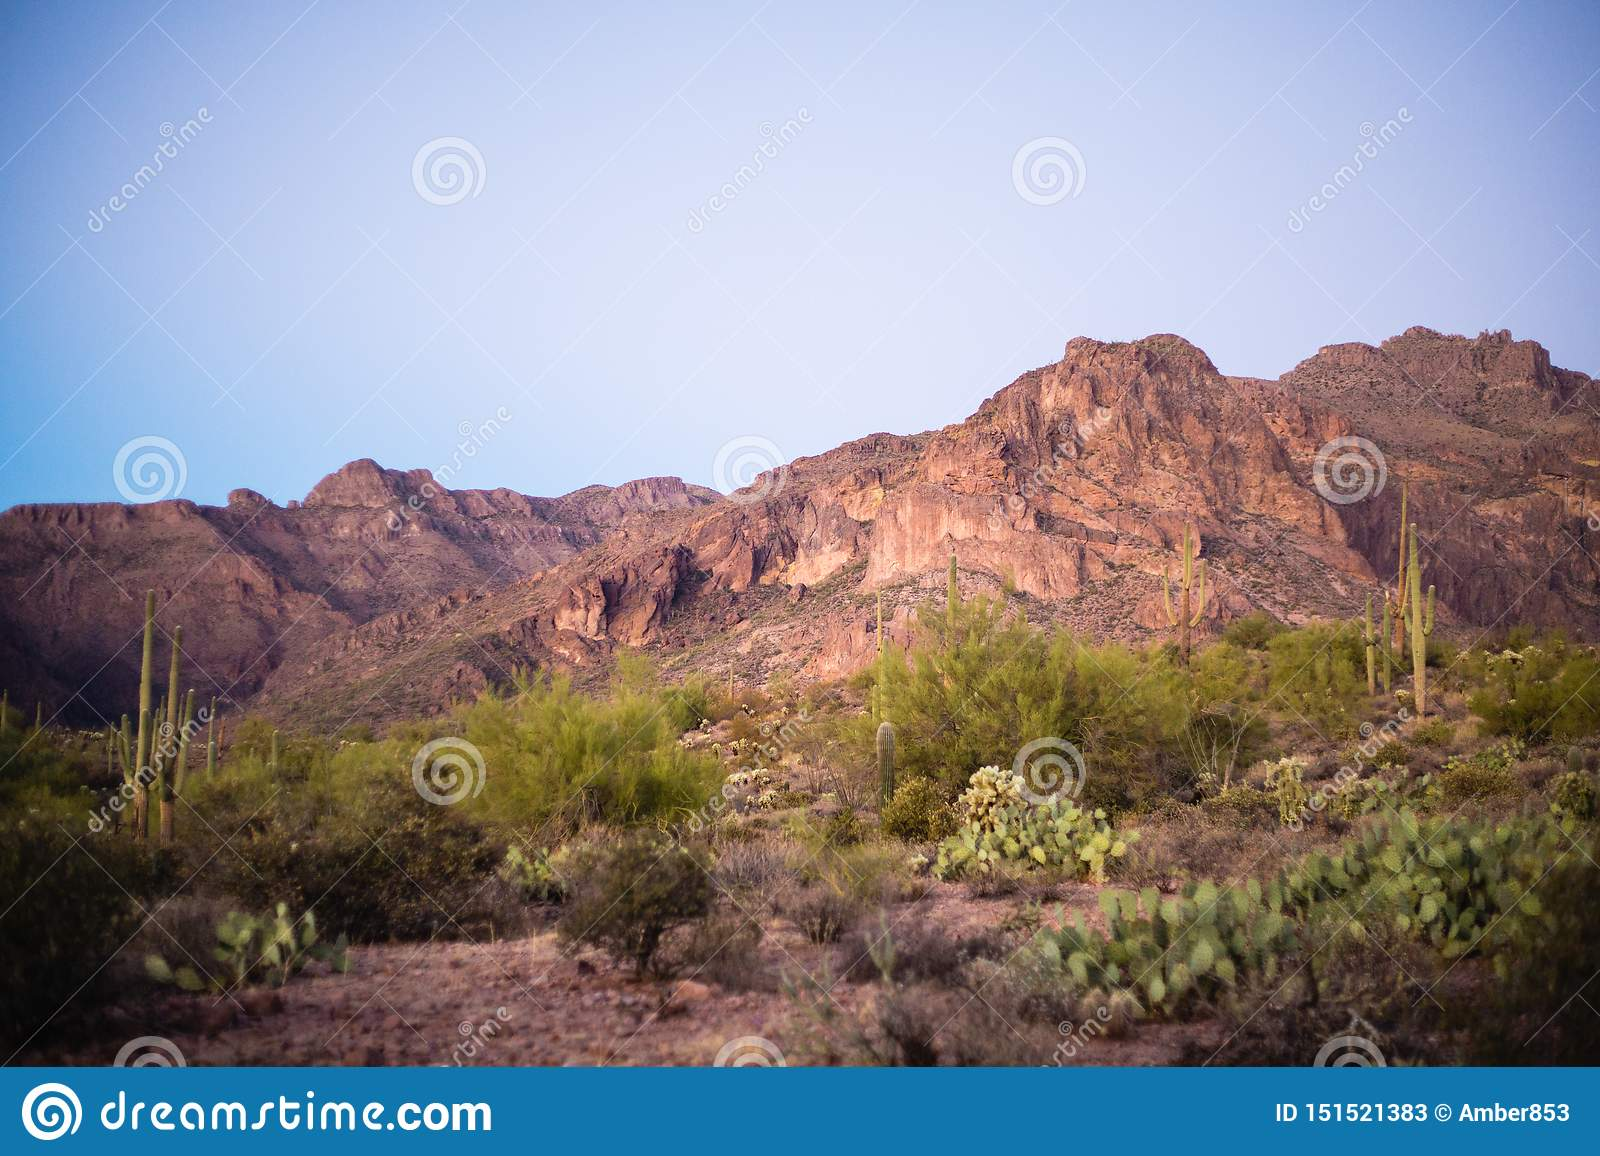 Superstition Mountain Landscape in Arizona Desert